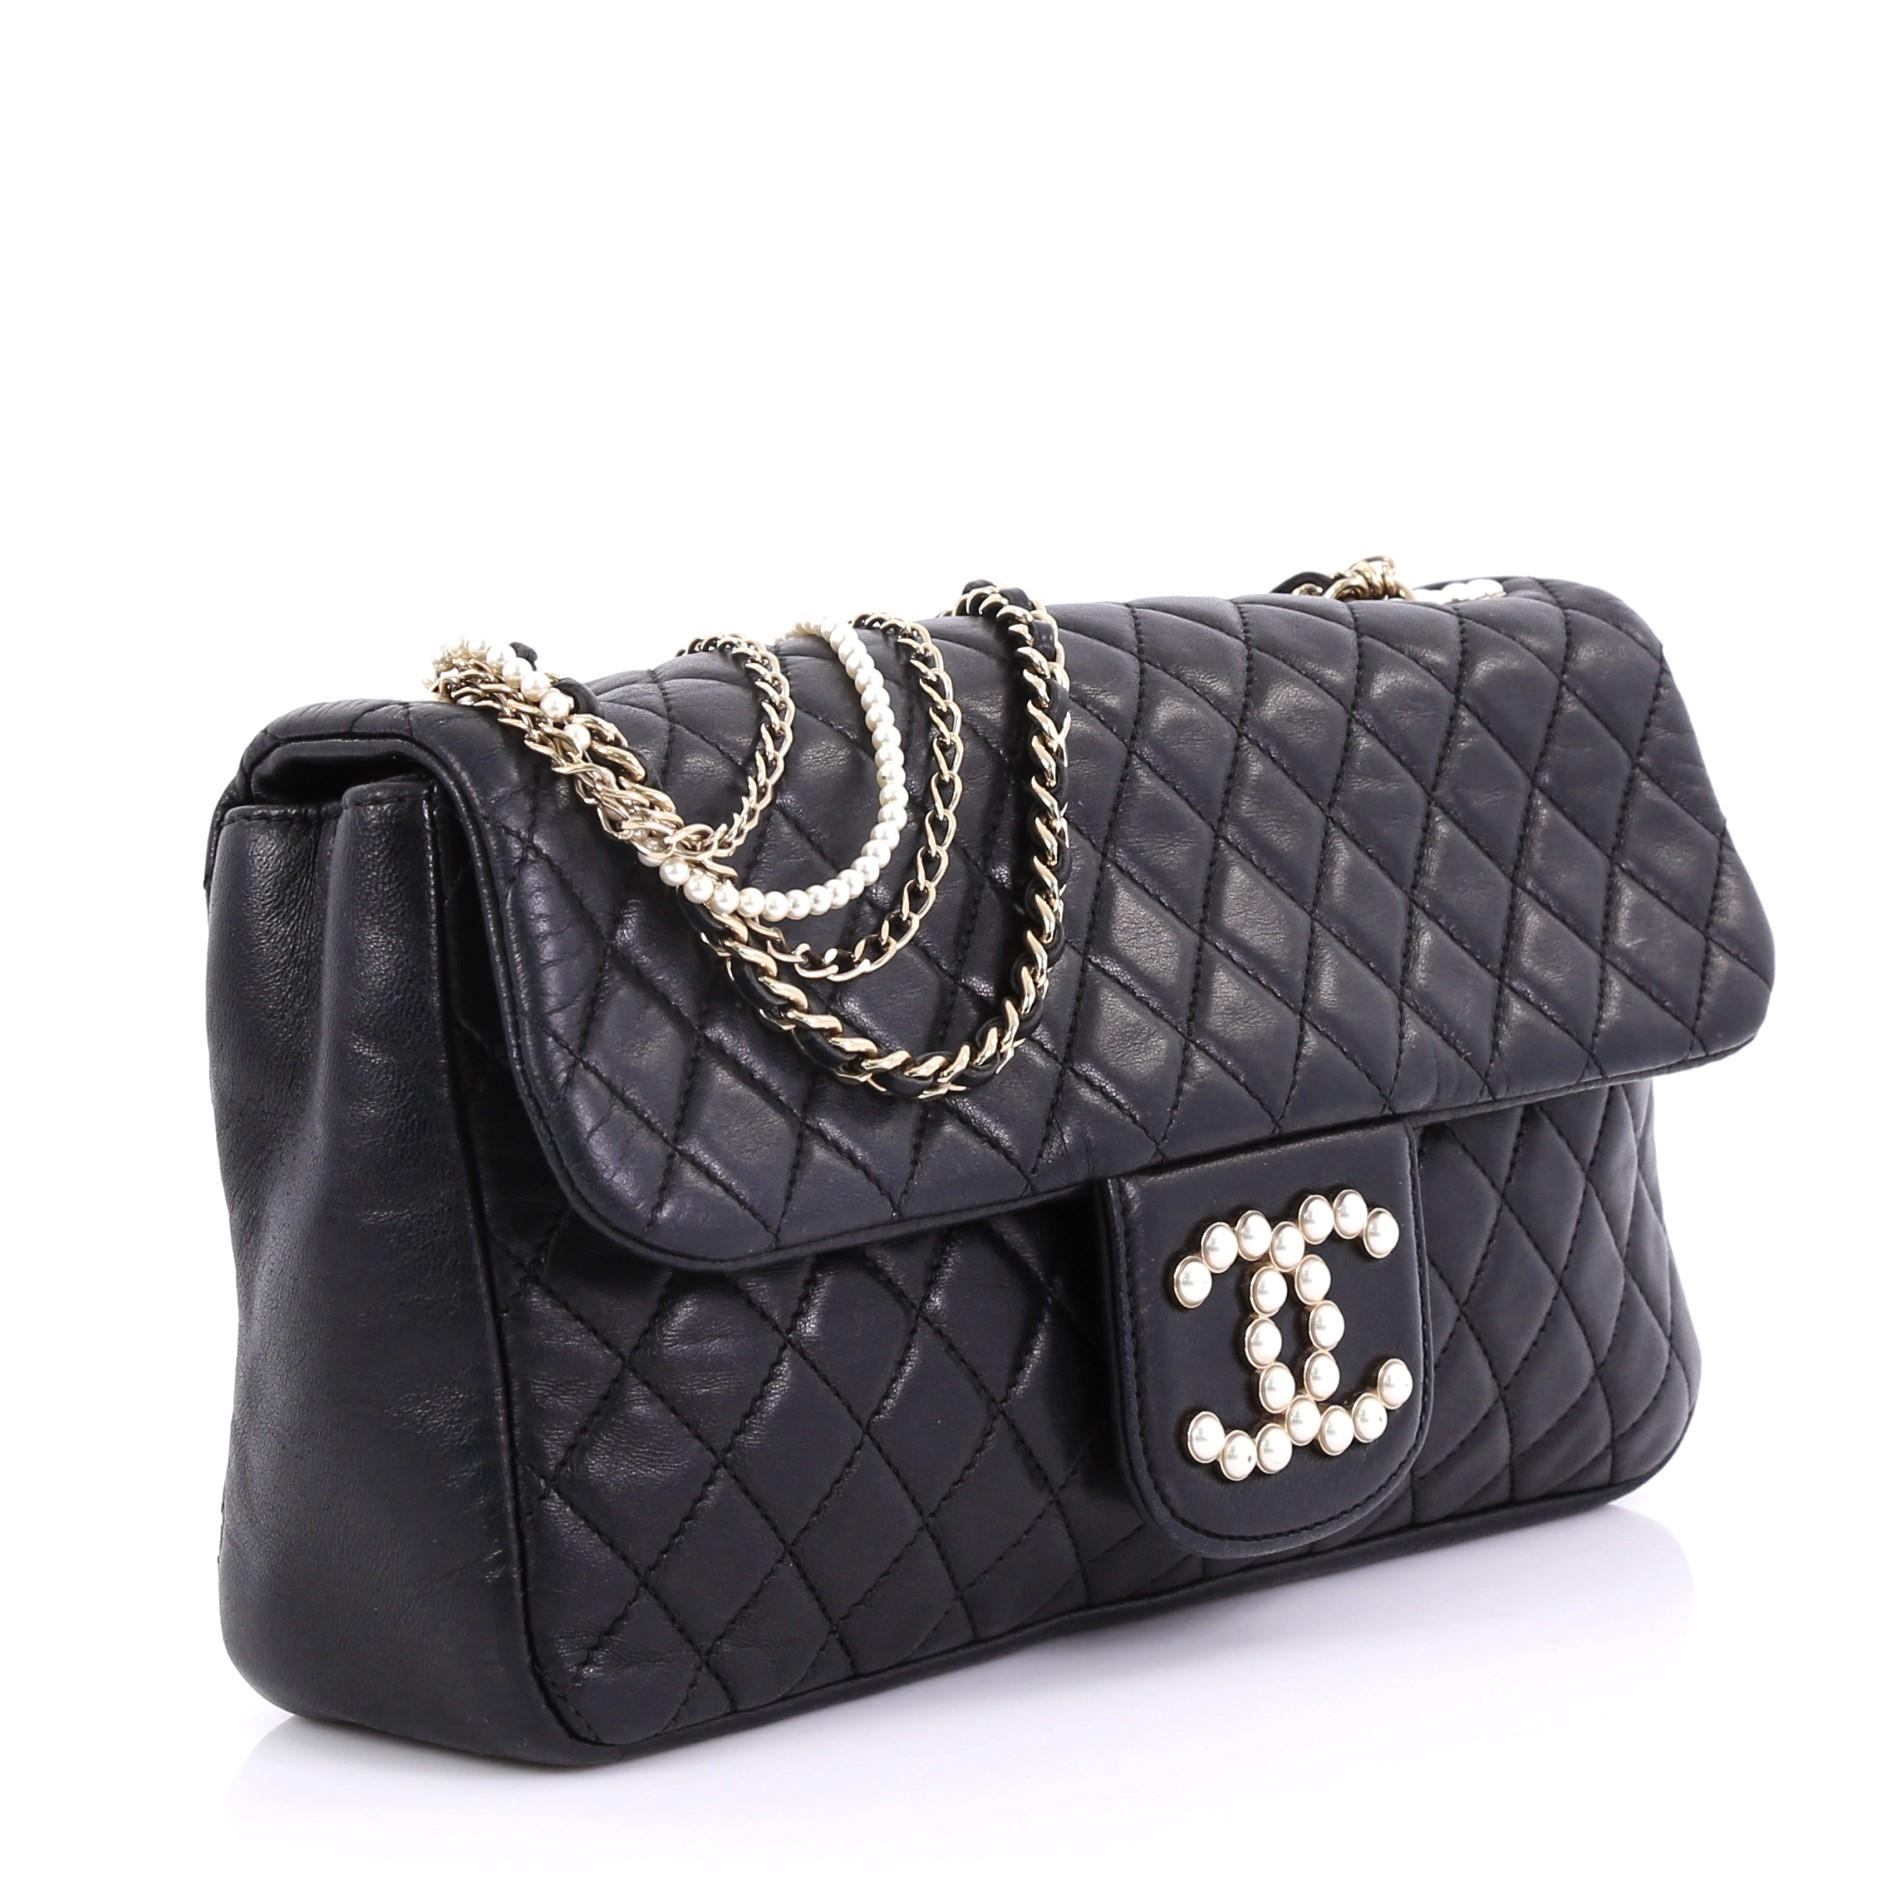 ee7c411fb976 Chanel Westminster Pearl Chain Flap Bag Quilted Lambskin Medium at 1stdibs